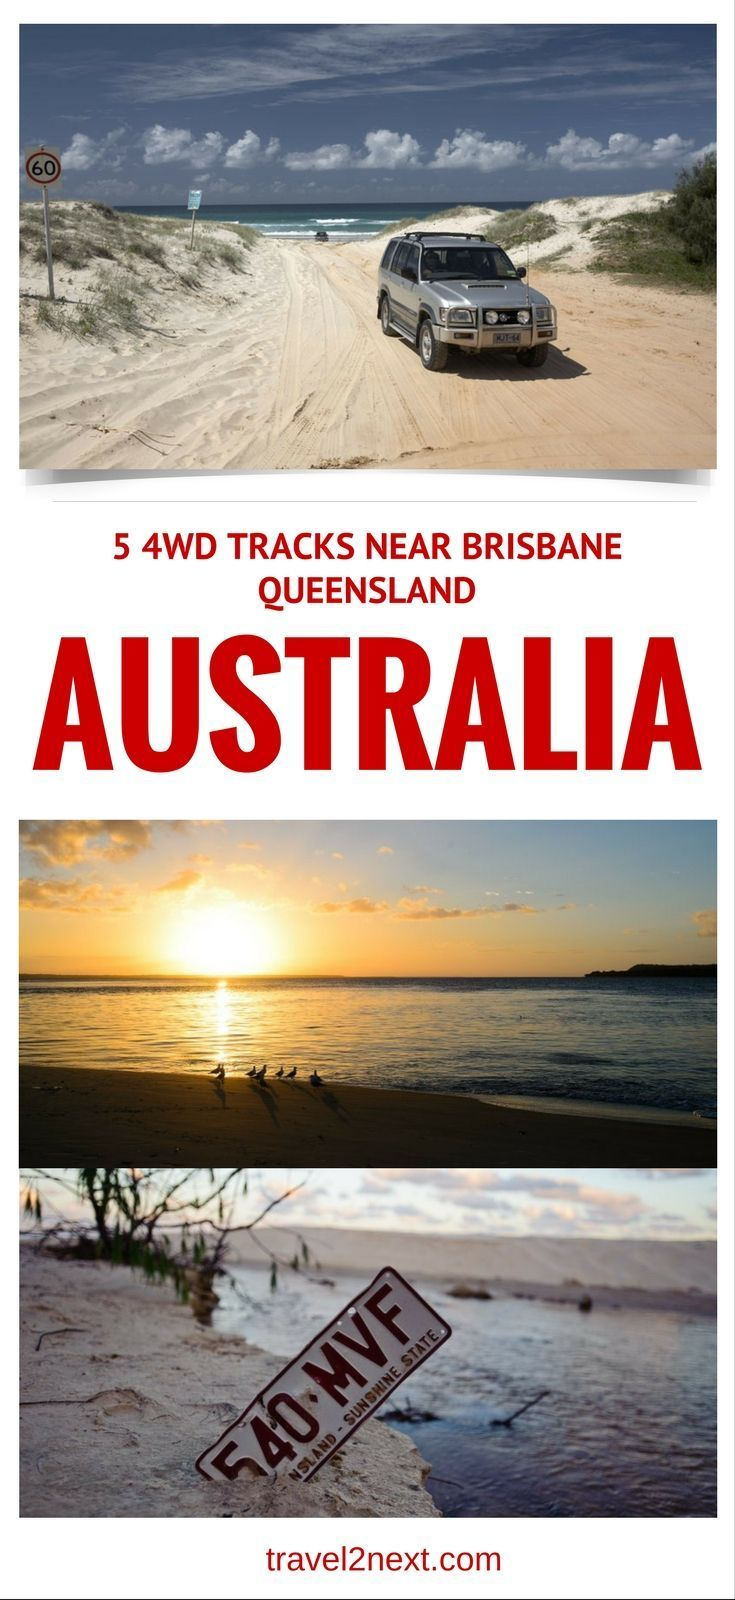 5 great 4WD tracks around Brisbane, Queensland. Winner of the Australian Society of Travel Writers 2014 Best Travel Book award, Danielle Lancaster, shares five tracks from her book 4WDTreks Close to Brisbane.